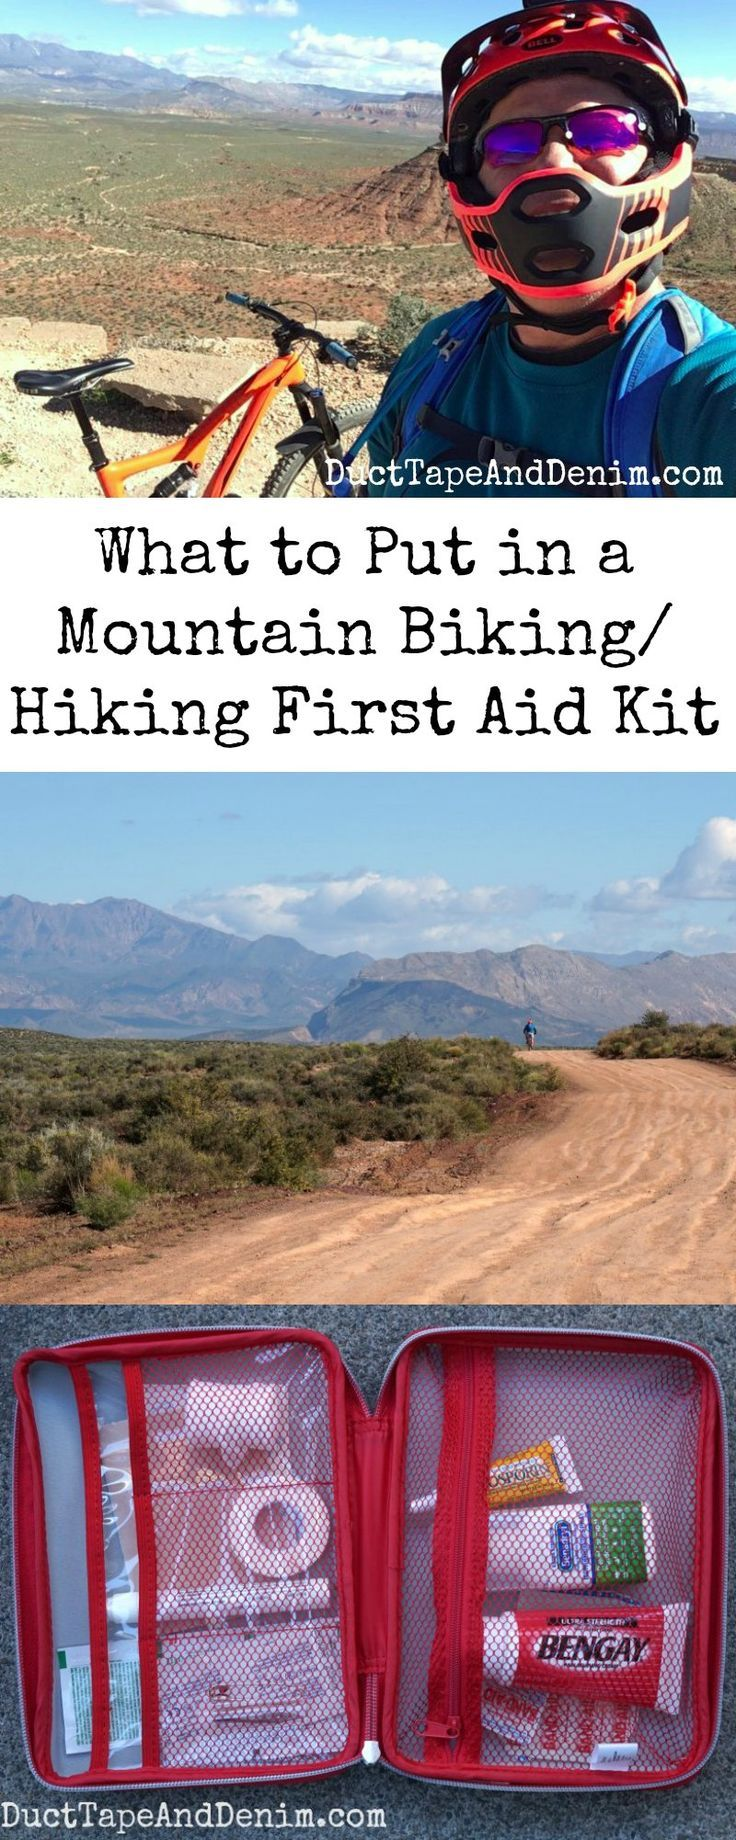 What to put in a mountain biking hiking first aid kit.  DuctTapeAndDenim.com  #firstaidkit #mountainbiking #hiking #hikingfirstaidkit #whattoputinfirstaidkit